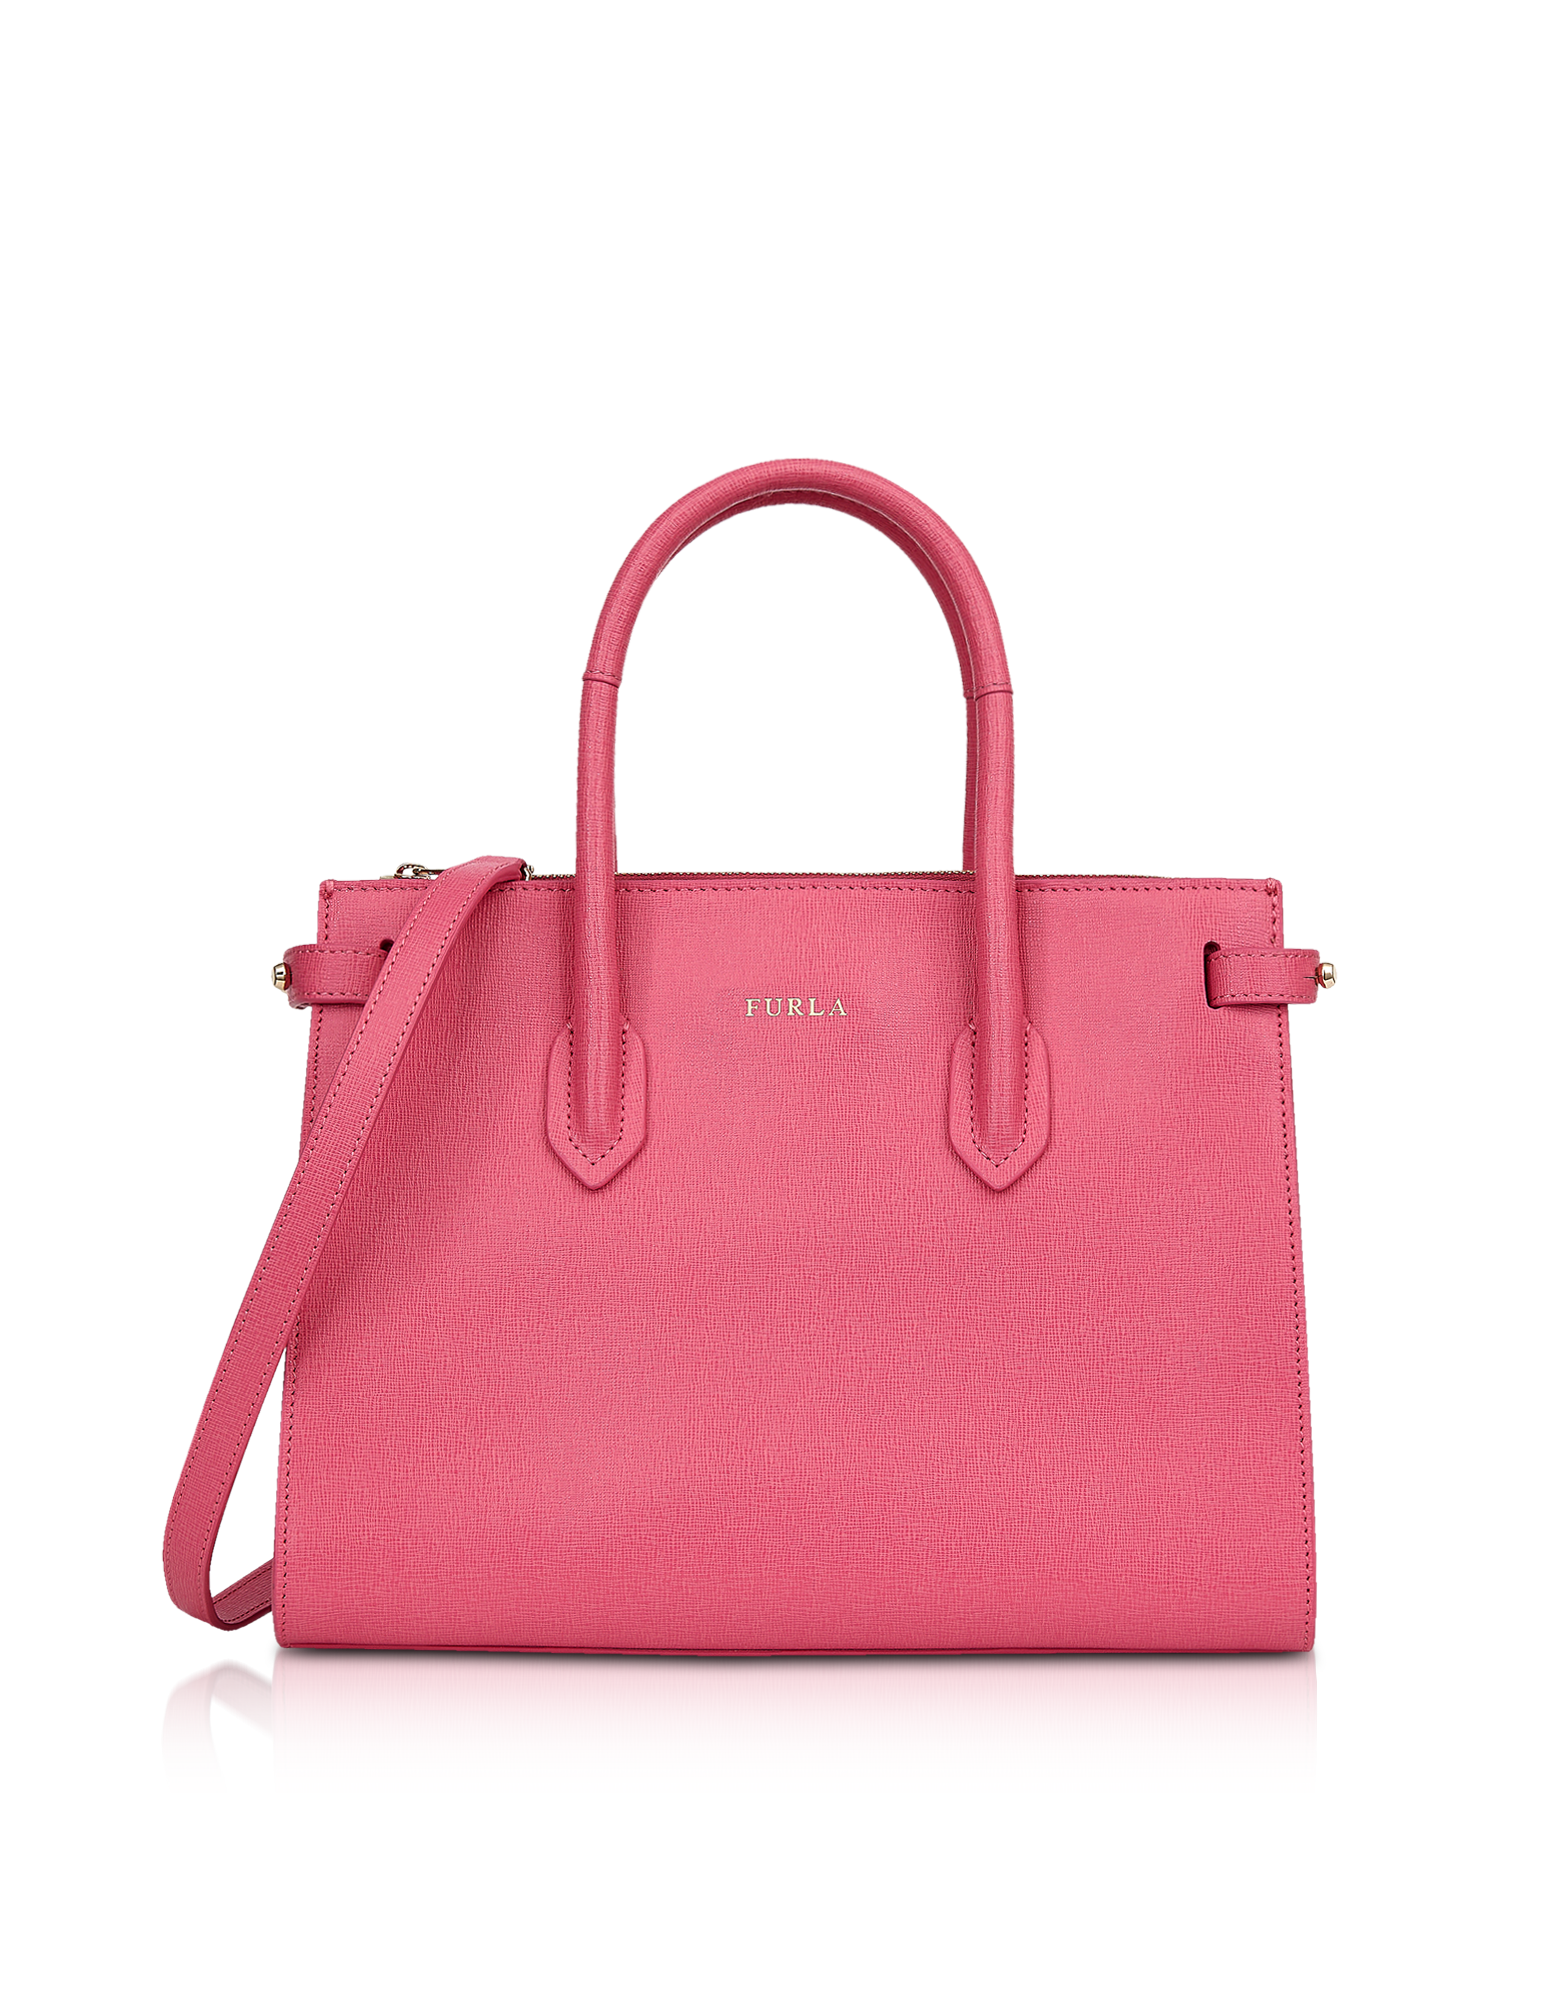 1c662797a FORZIERI: The Furla SALE | Ends Jan 31 | Milled